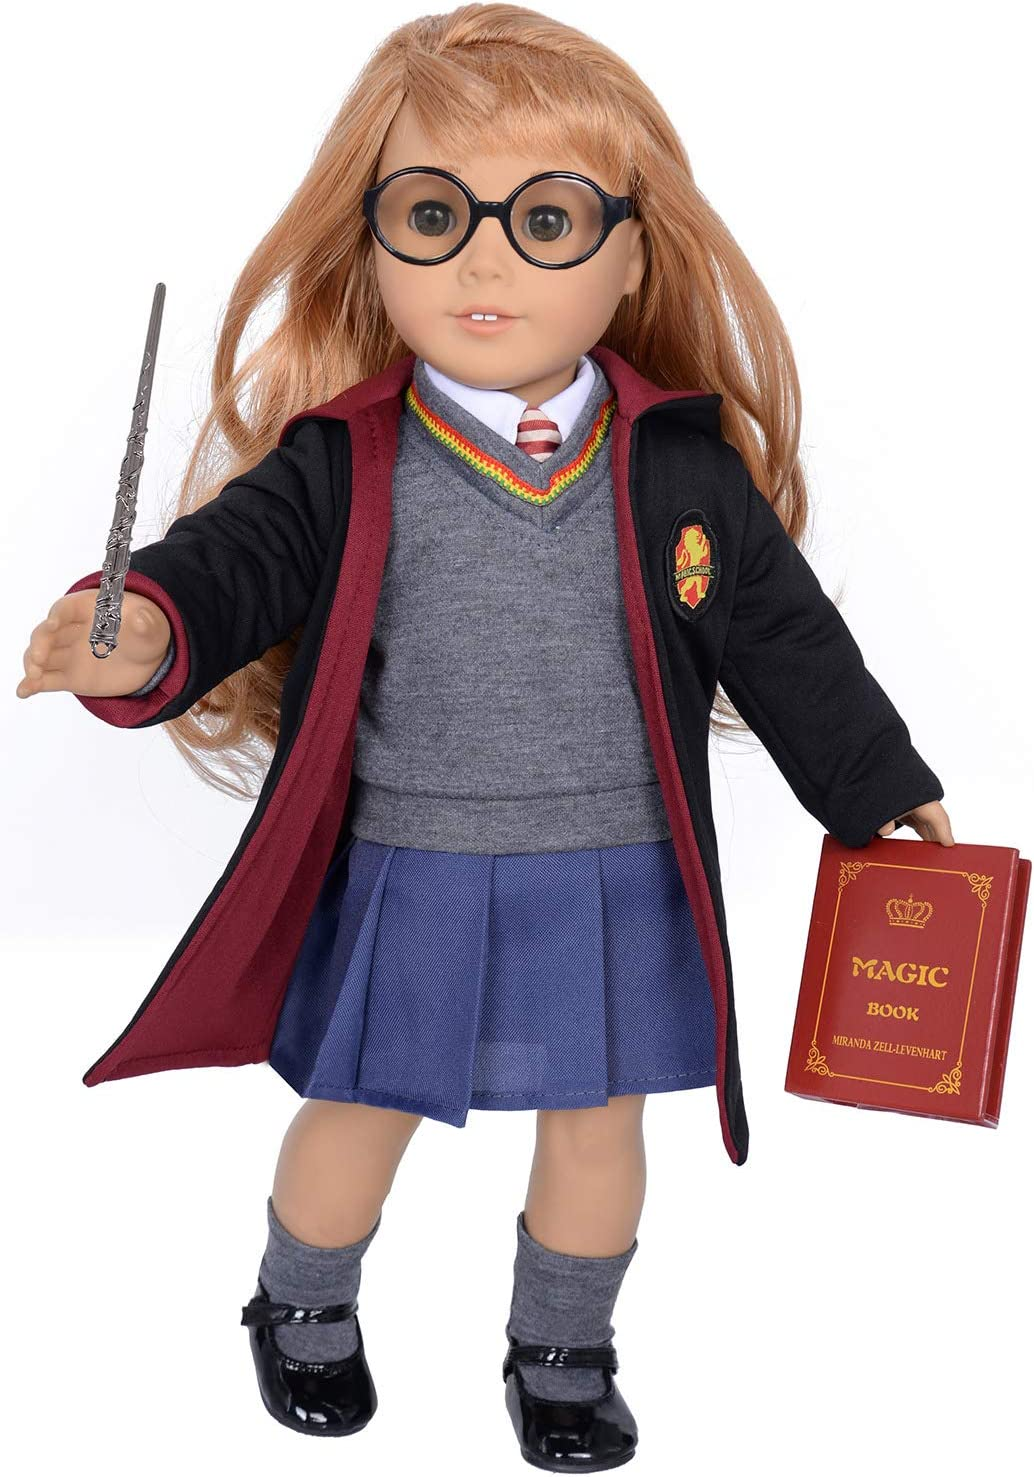 ebuddy 10pc Set Hermione Inspired Doll Clothes Outfits for 18 inch American Girl Dolls Includes Shirt, Skirt, Sweater, Tie, Socks, Robe, Magic Wind,